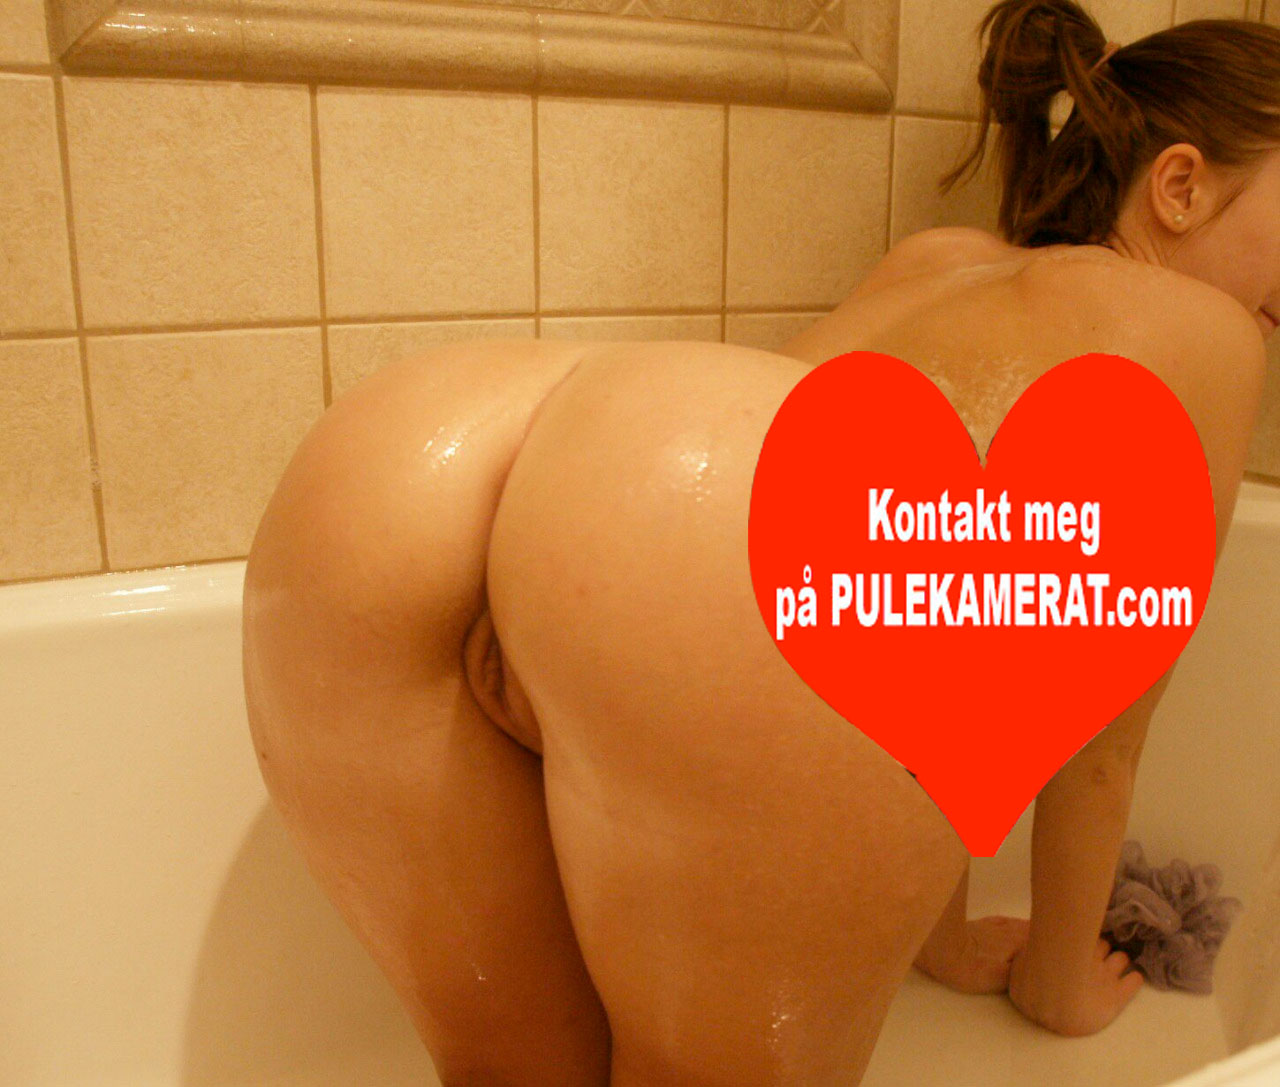 escorte & massage norske damer sex